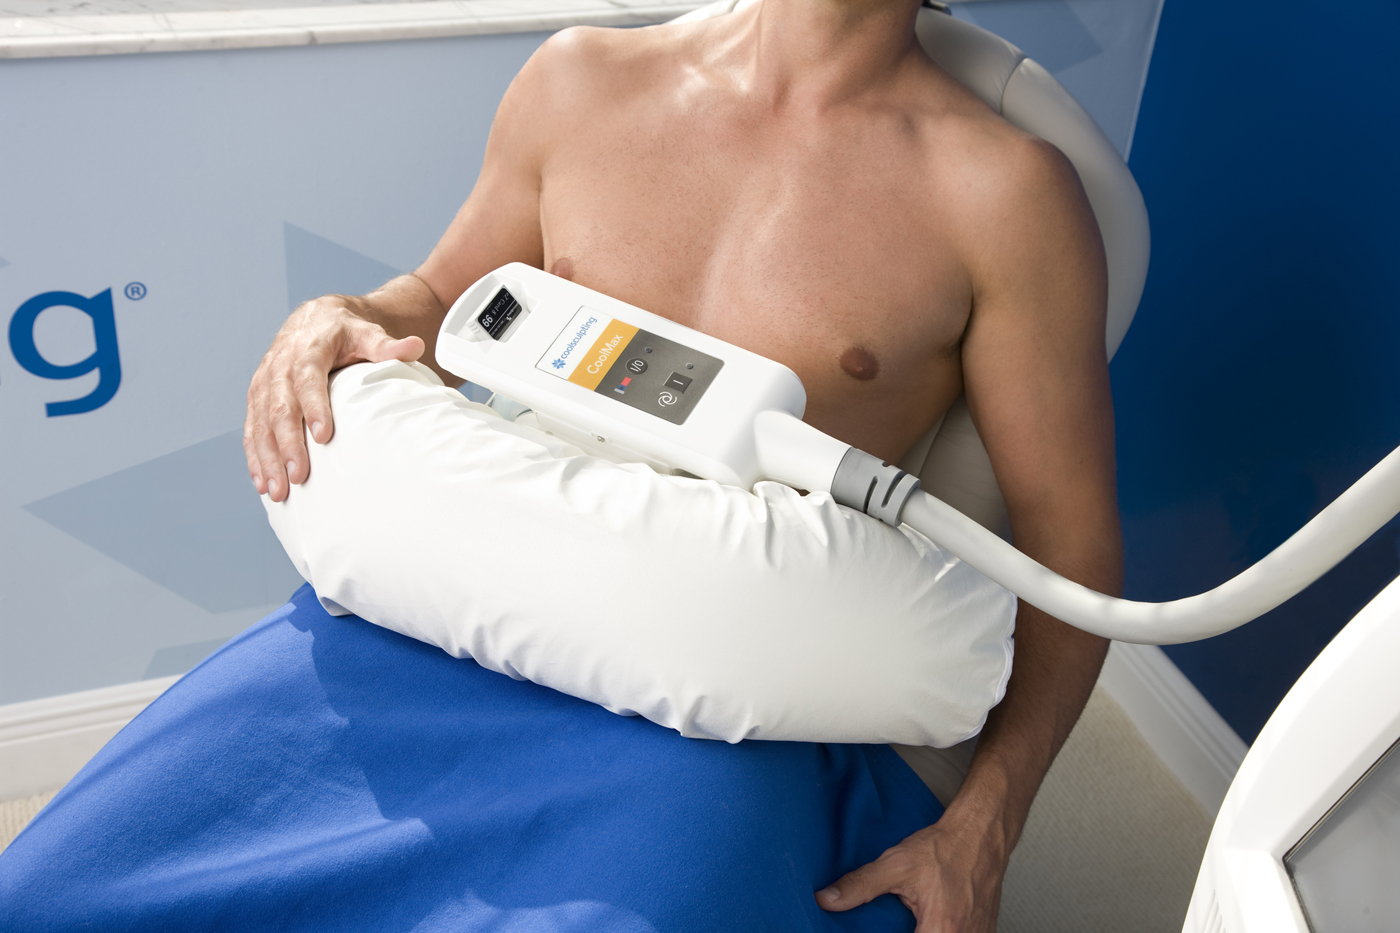 lose belly fat with coolsculpting treatment photo